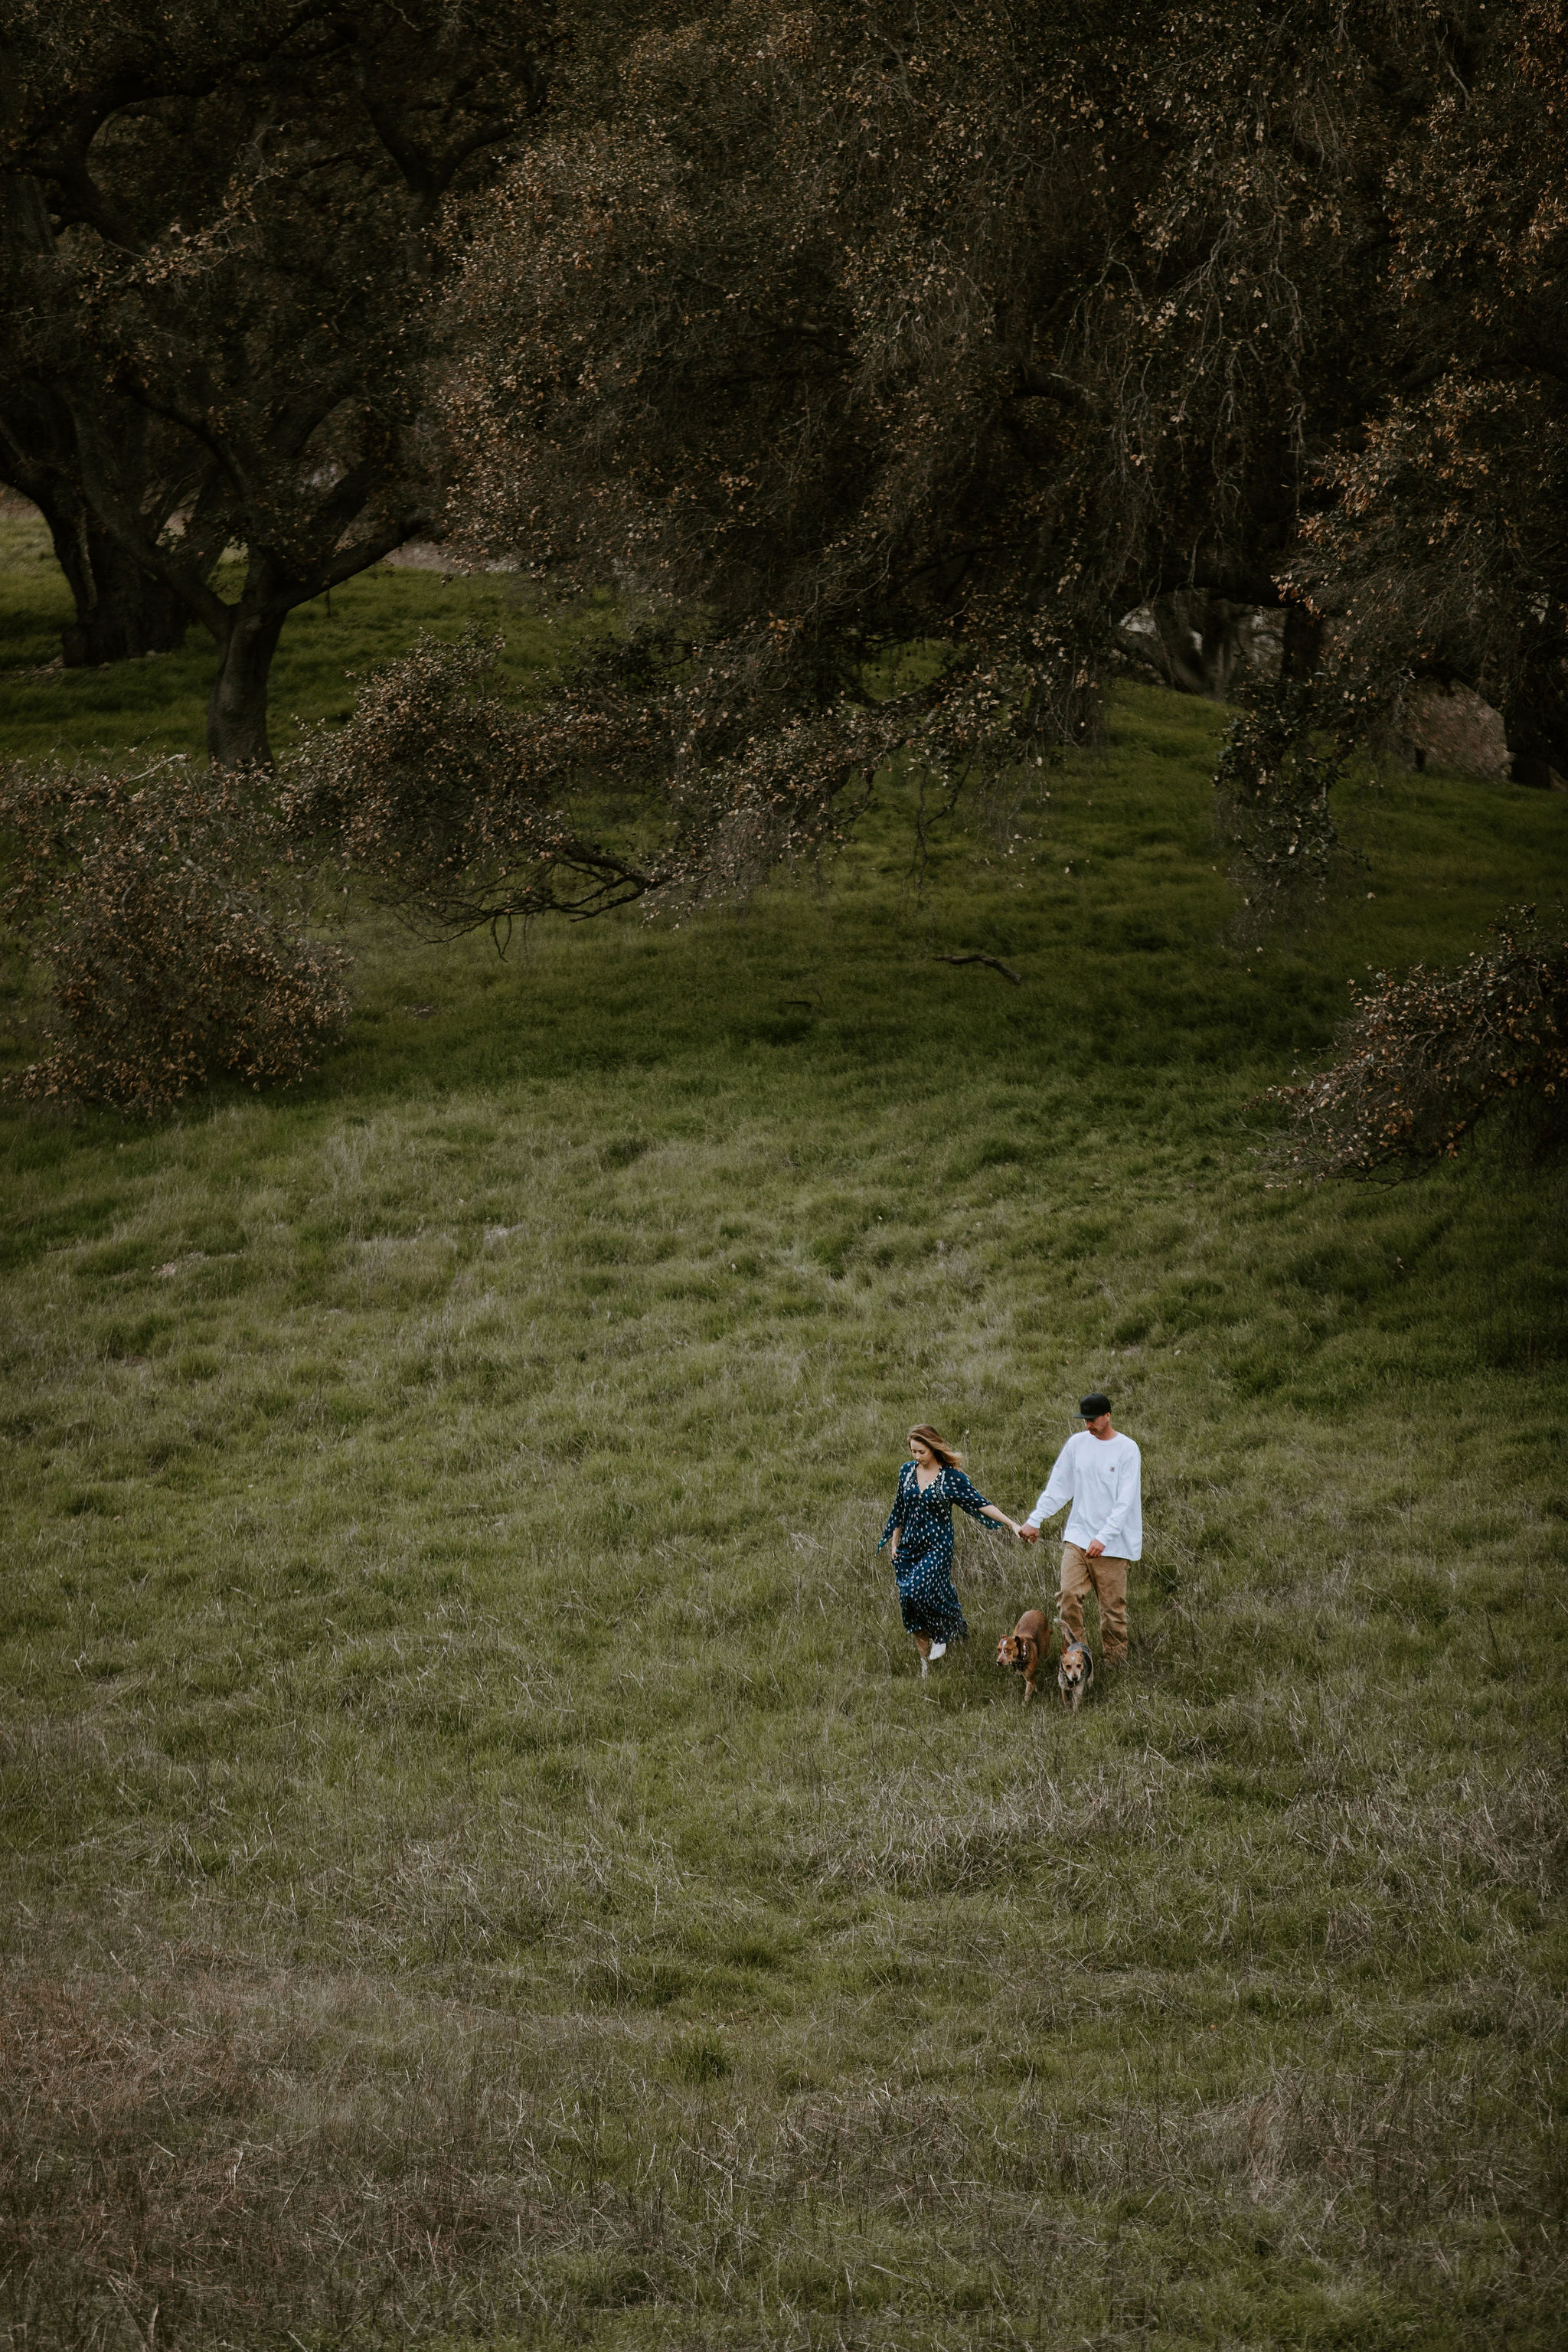 OjaiEngagementSession_Geoff&LyndsiPhotography_Eveline&Scotty90.jpg